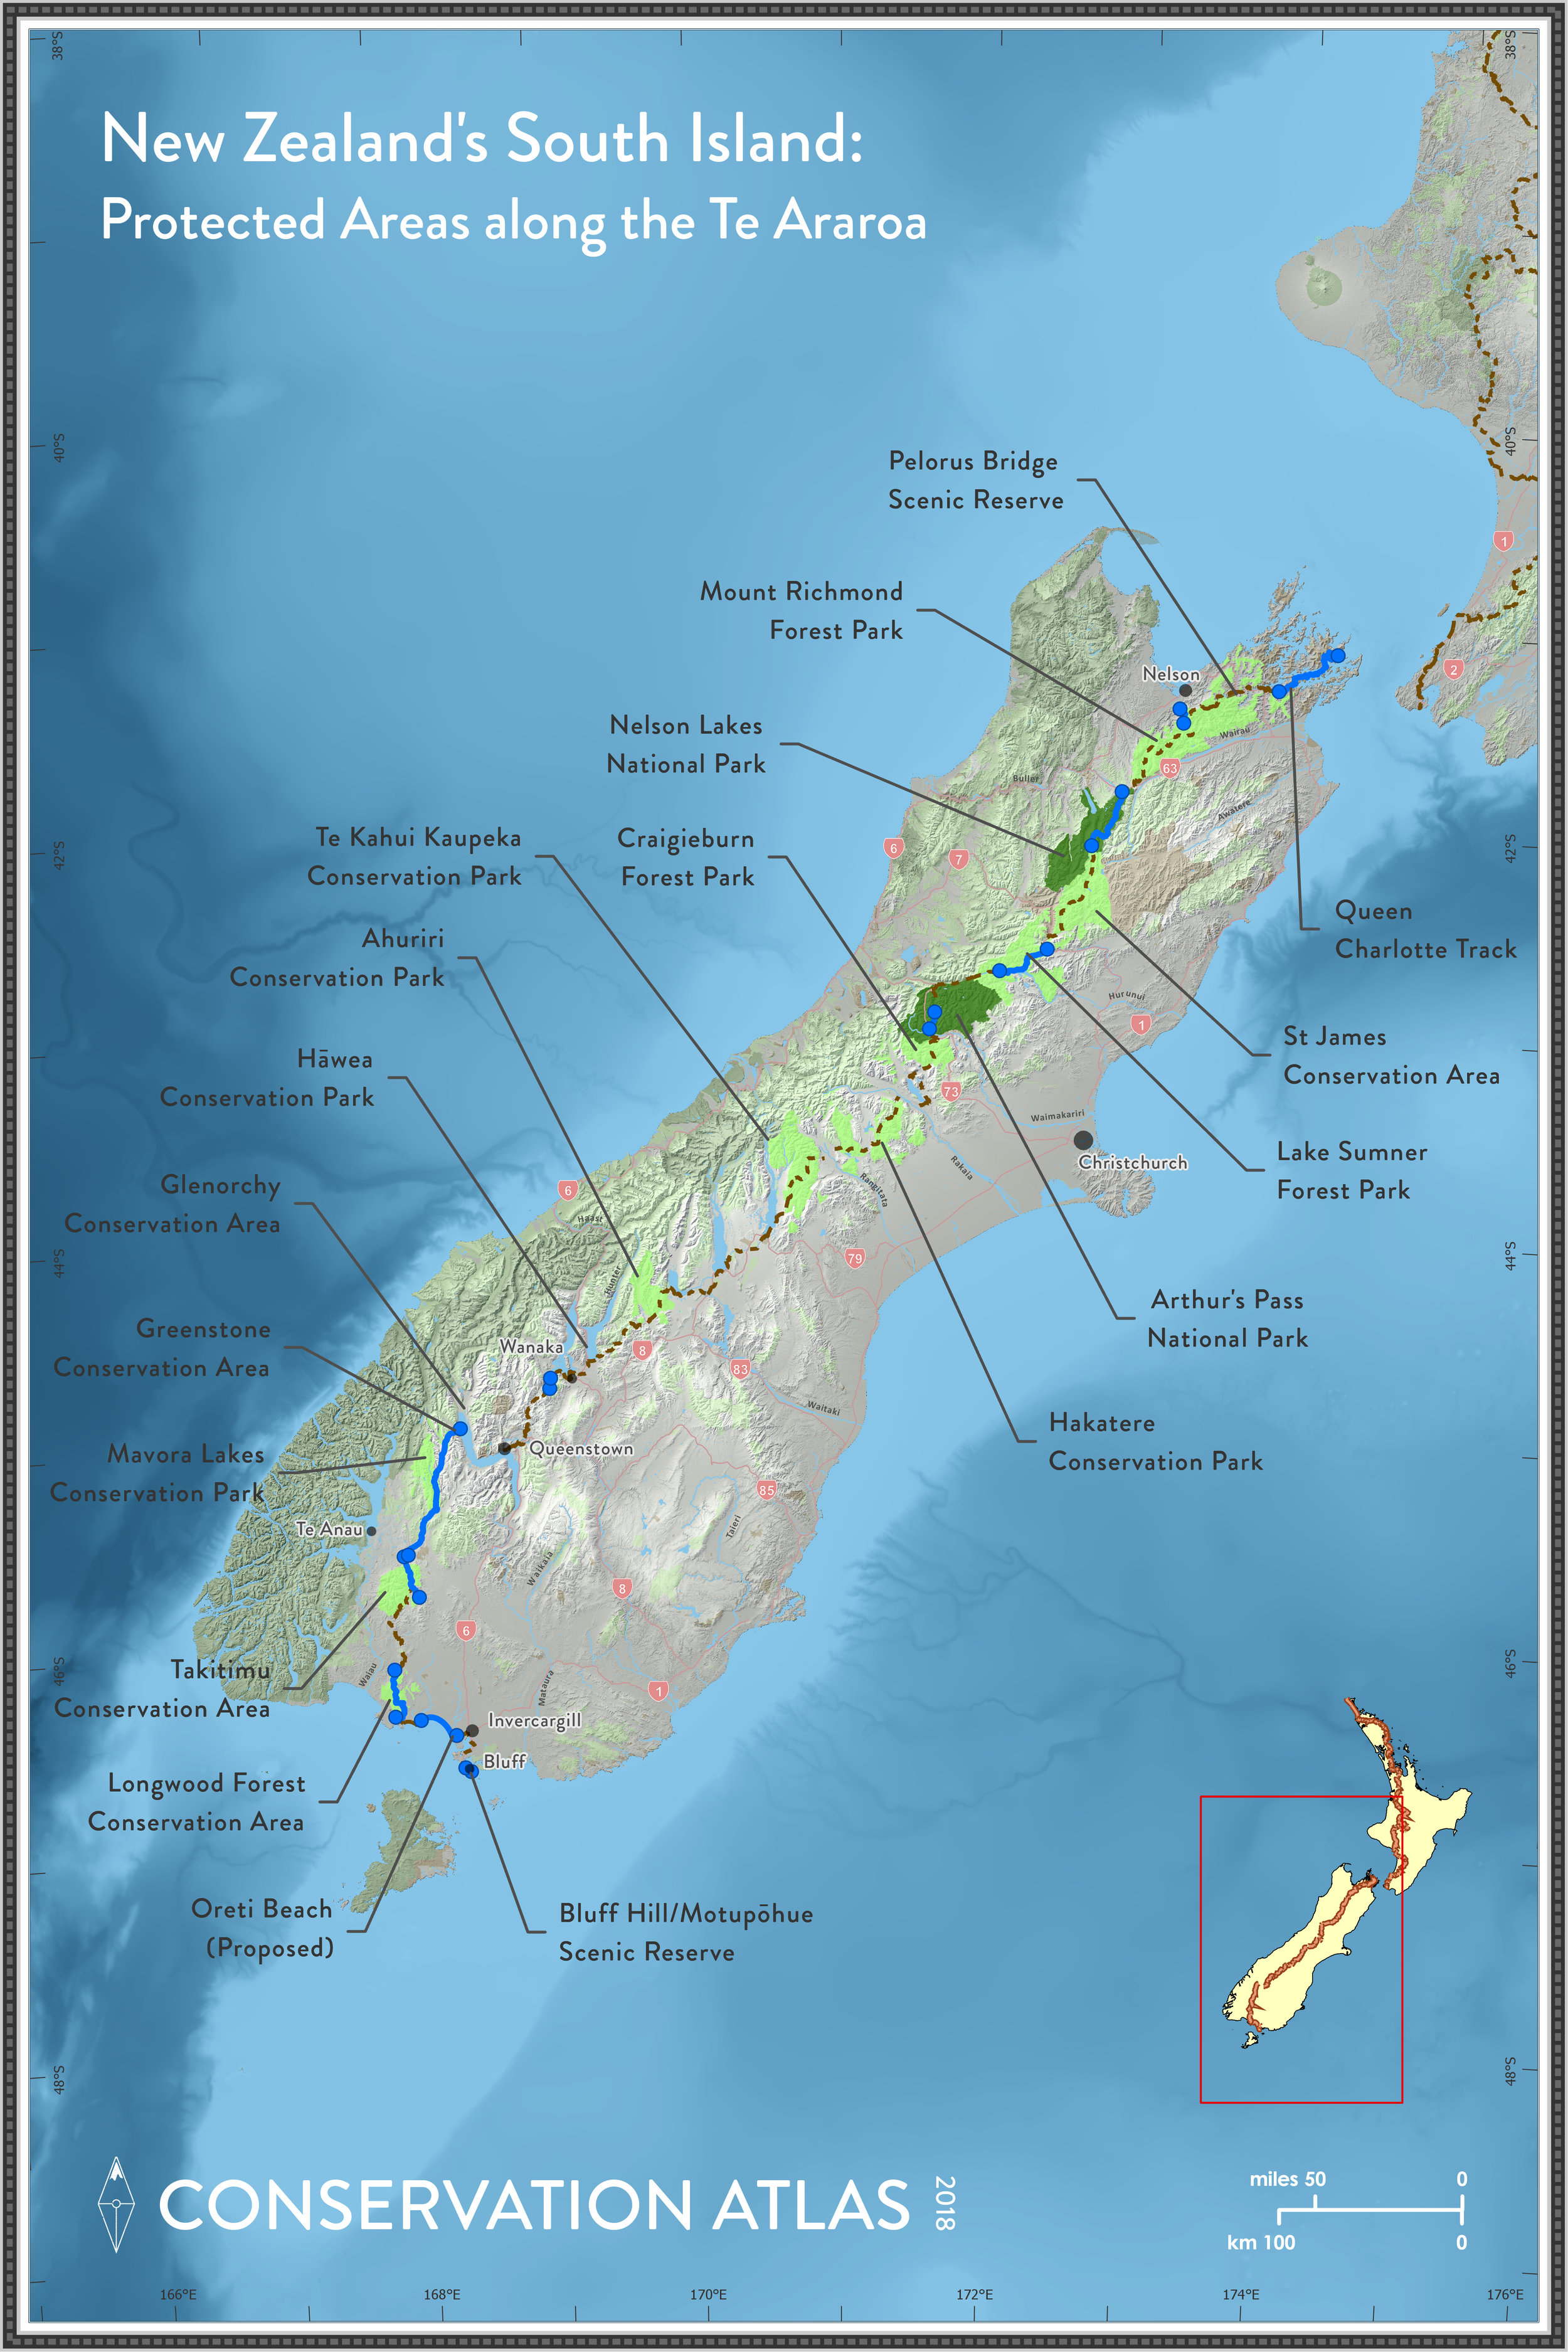 Categories of Protected Areas in New Zealand: - New Zealand's Protected Areas are managed under six laws in the country: Conservation Act 1987, National Parks Act 1980, Reserves Act 1977, Wildlife Act 1953, Marine Reserves Act 1971, and Marine Mammals Protection Act 1979.National Parks: Areas set aside for their